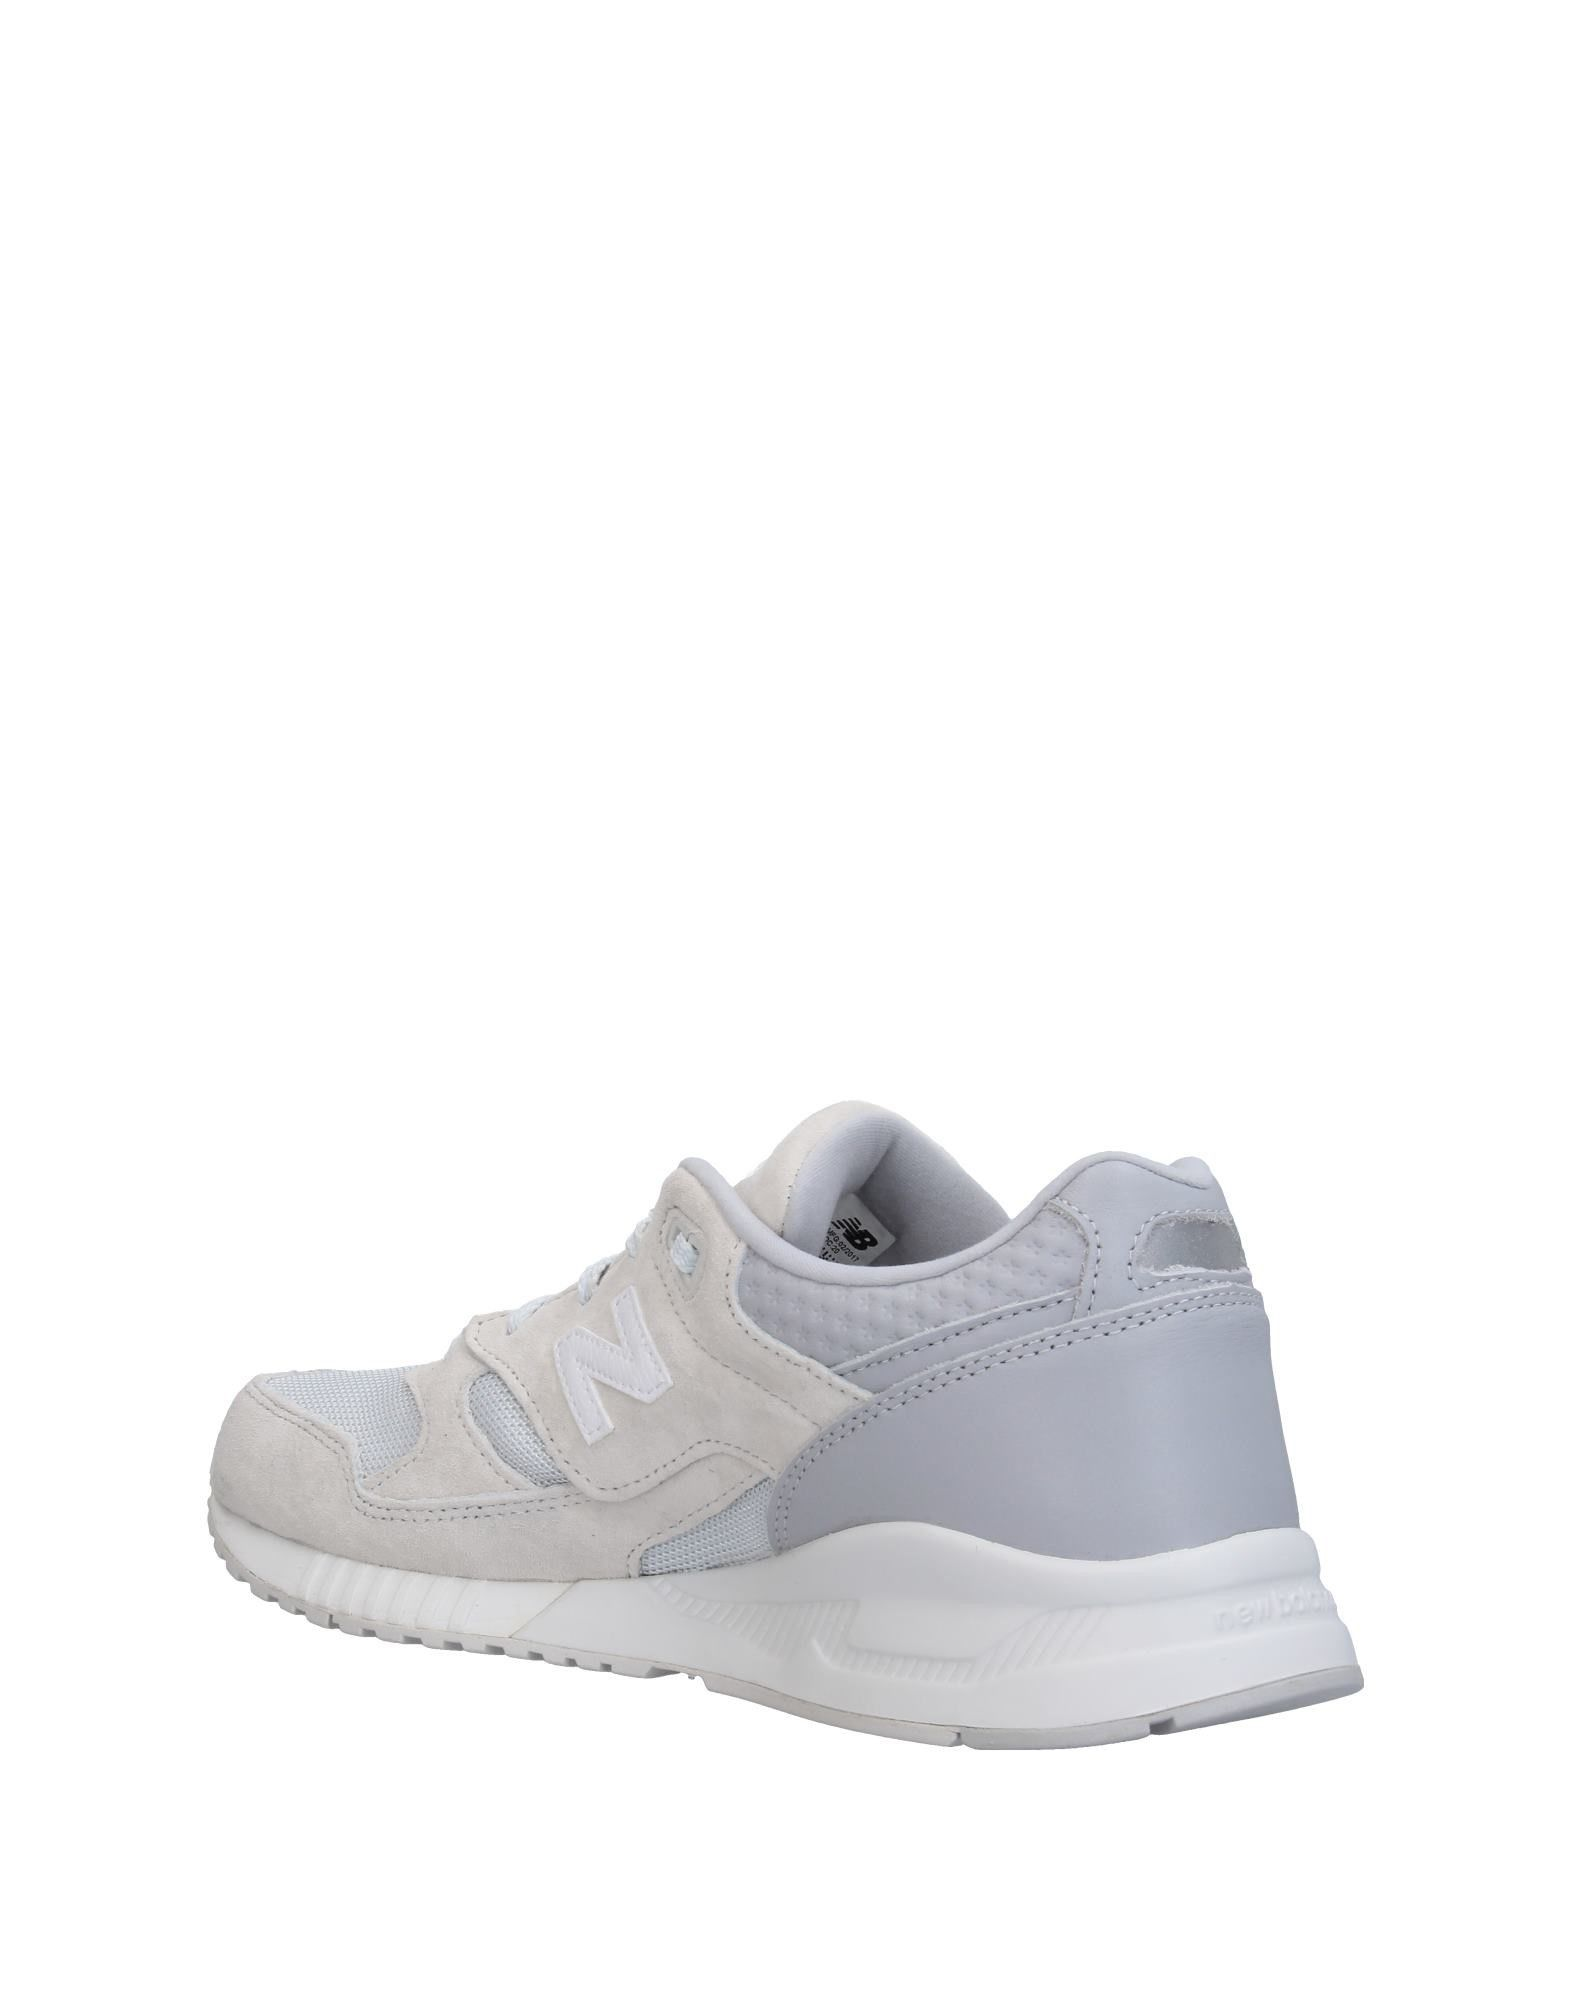 Sneakers New Balance Homme - Sneakers New Balance sur